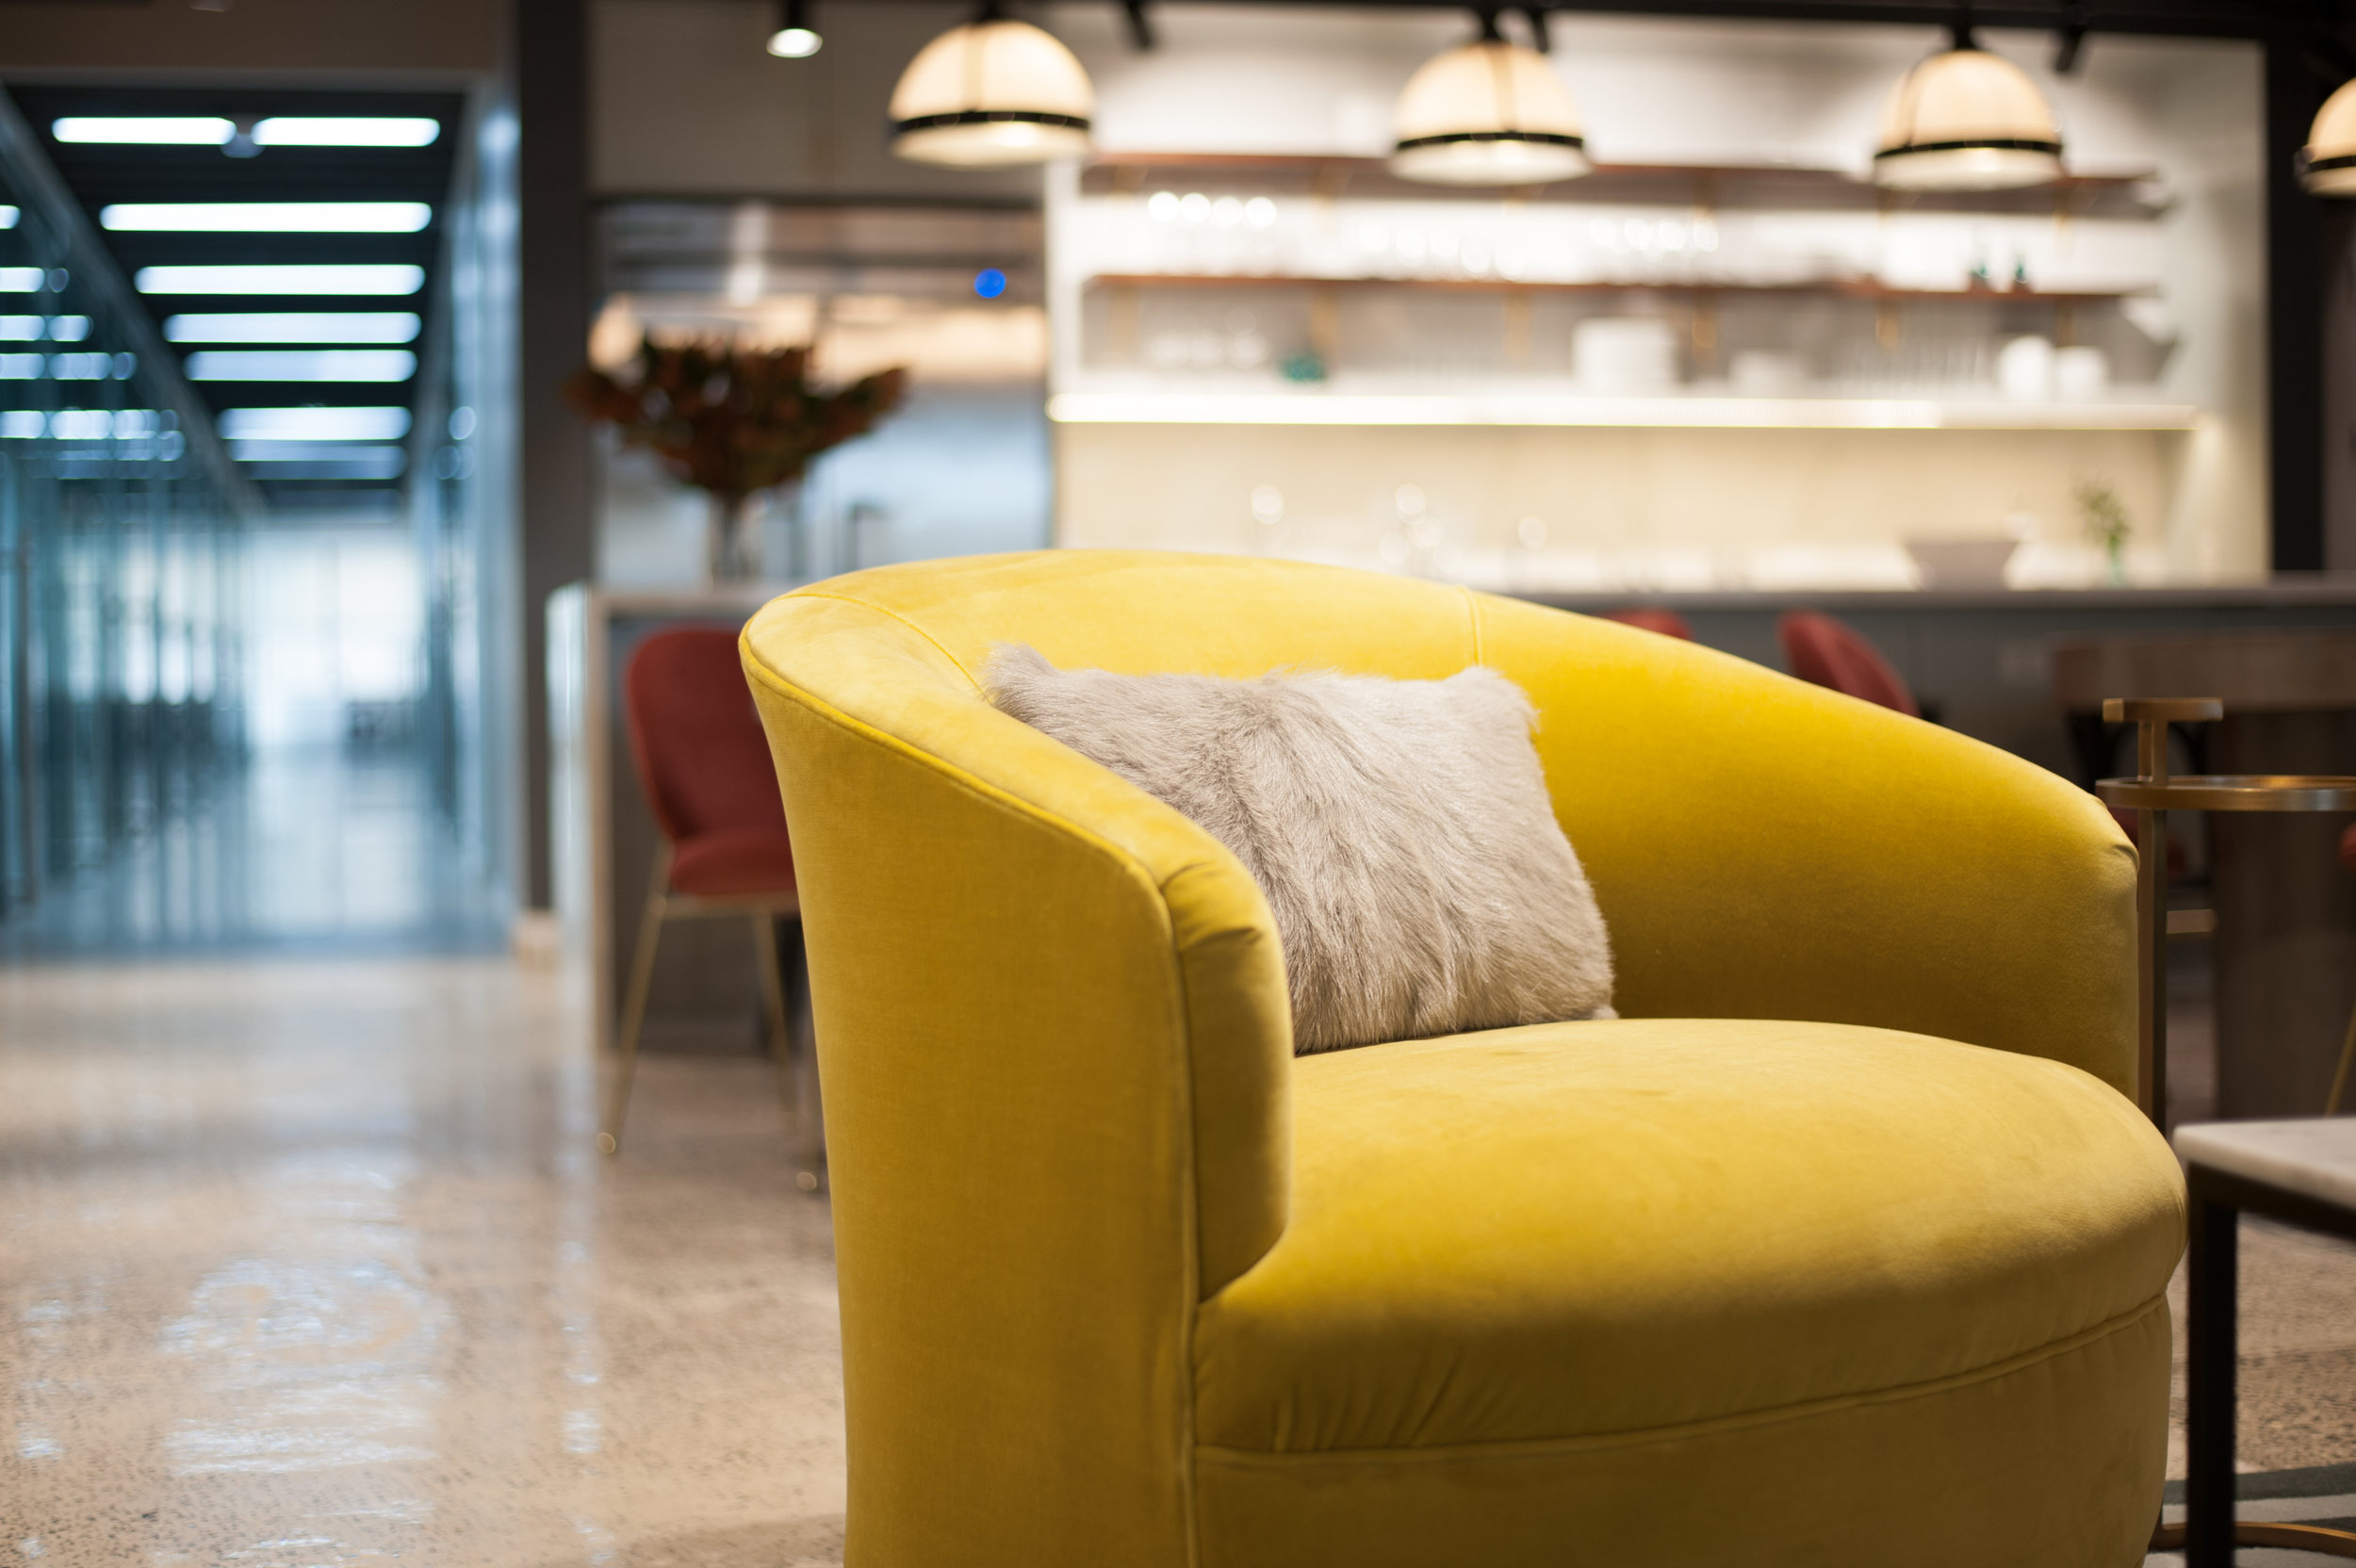 Yellow chair in a shared office space